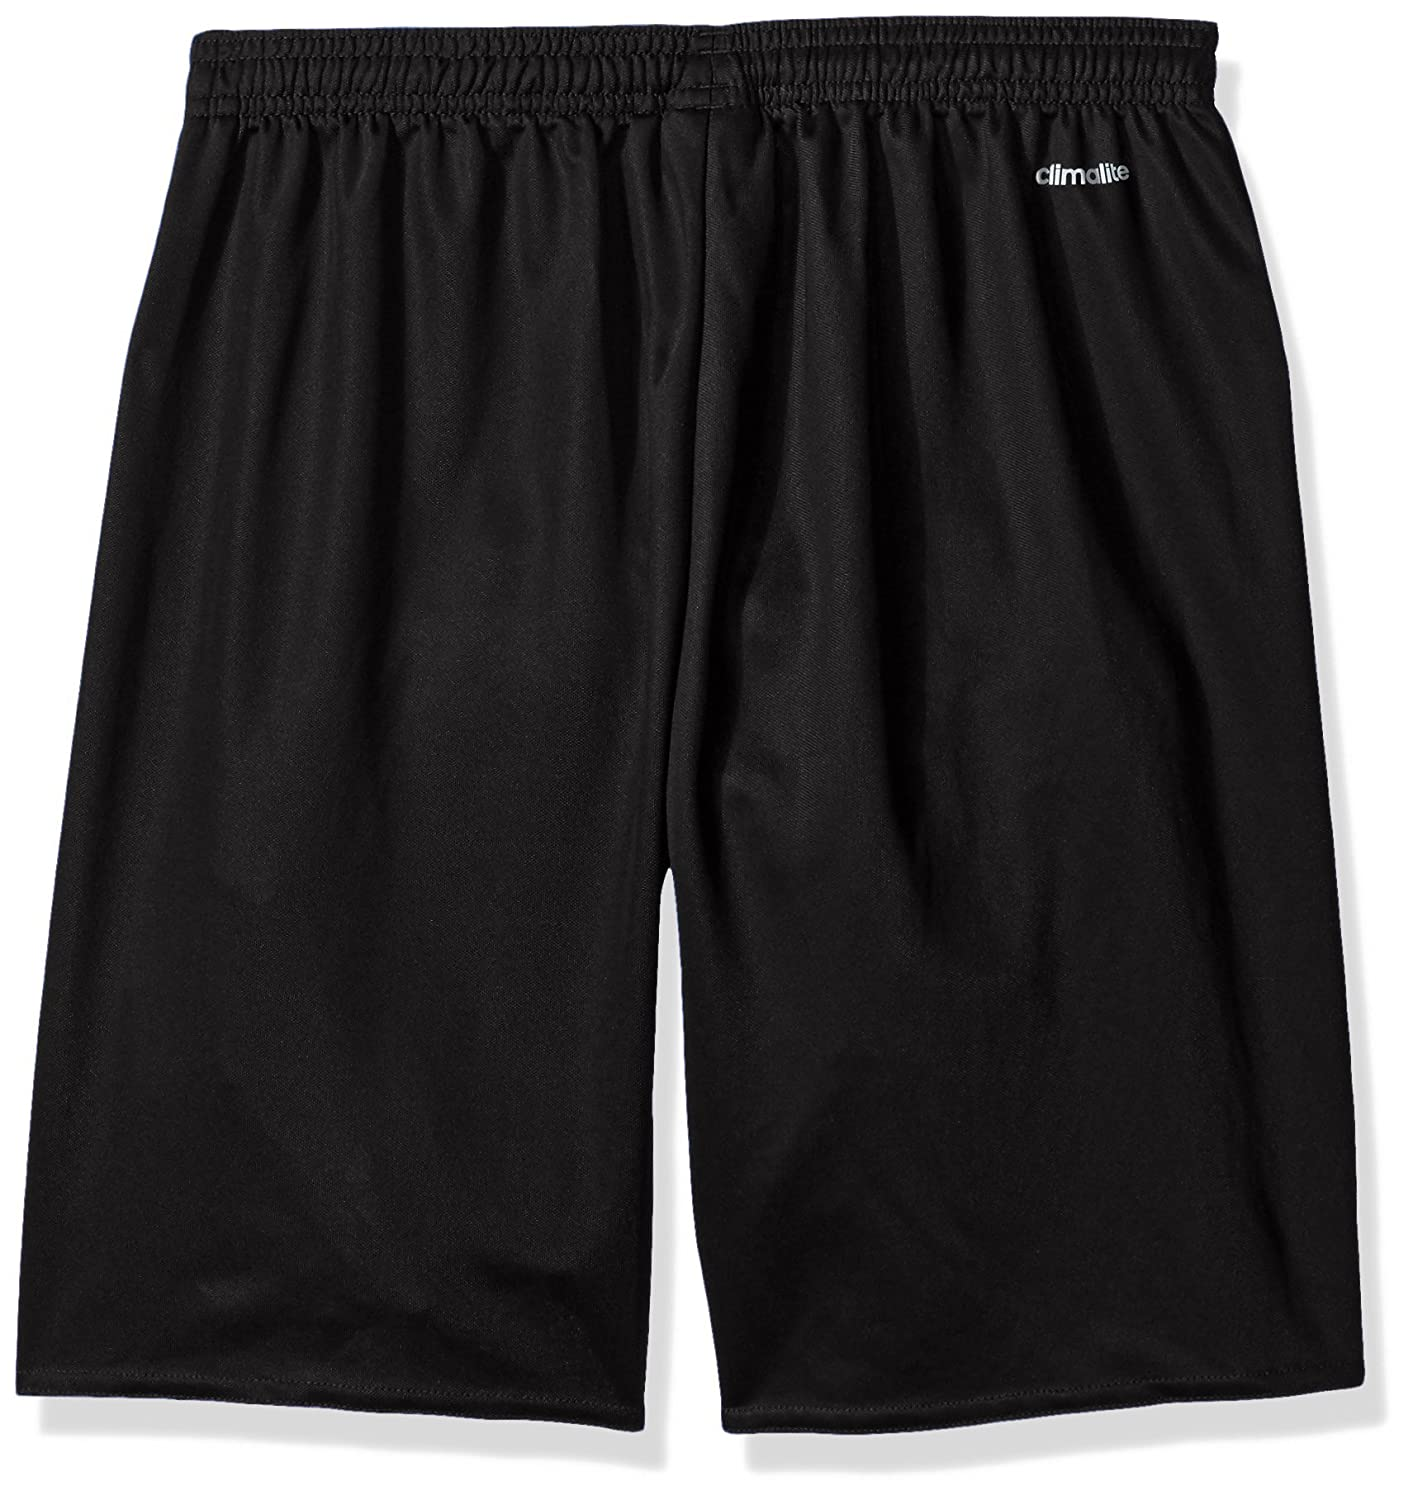 5b97e3d82 Amazon.com: adidas Youth Parma 16 Shorts: Clothing